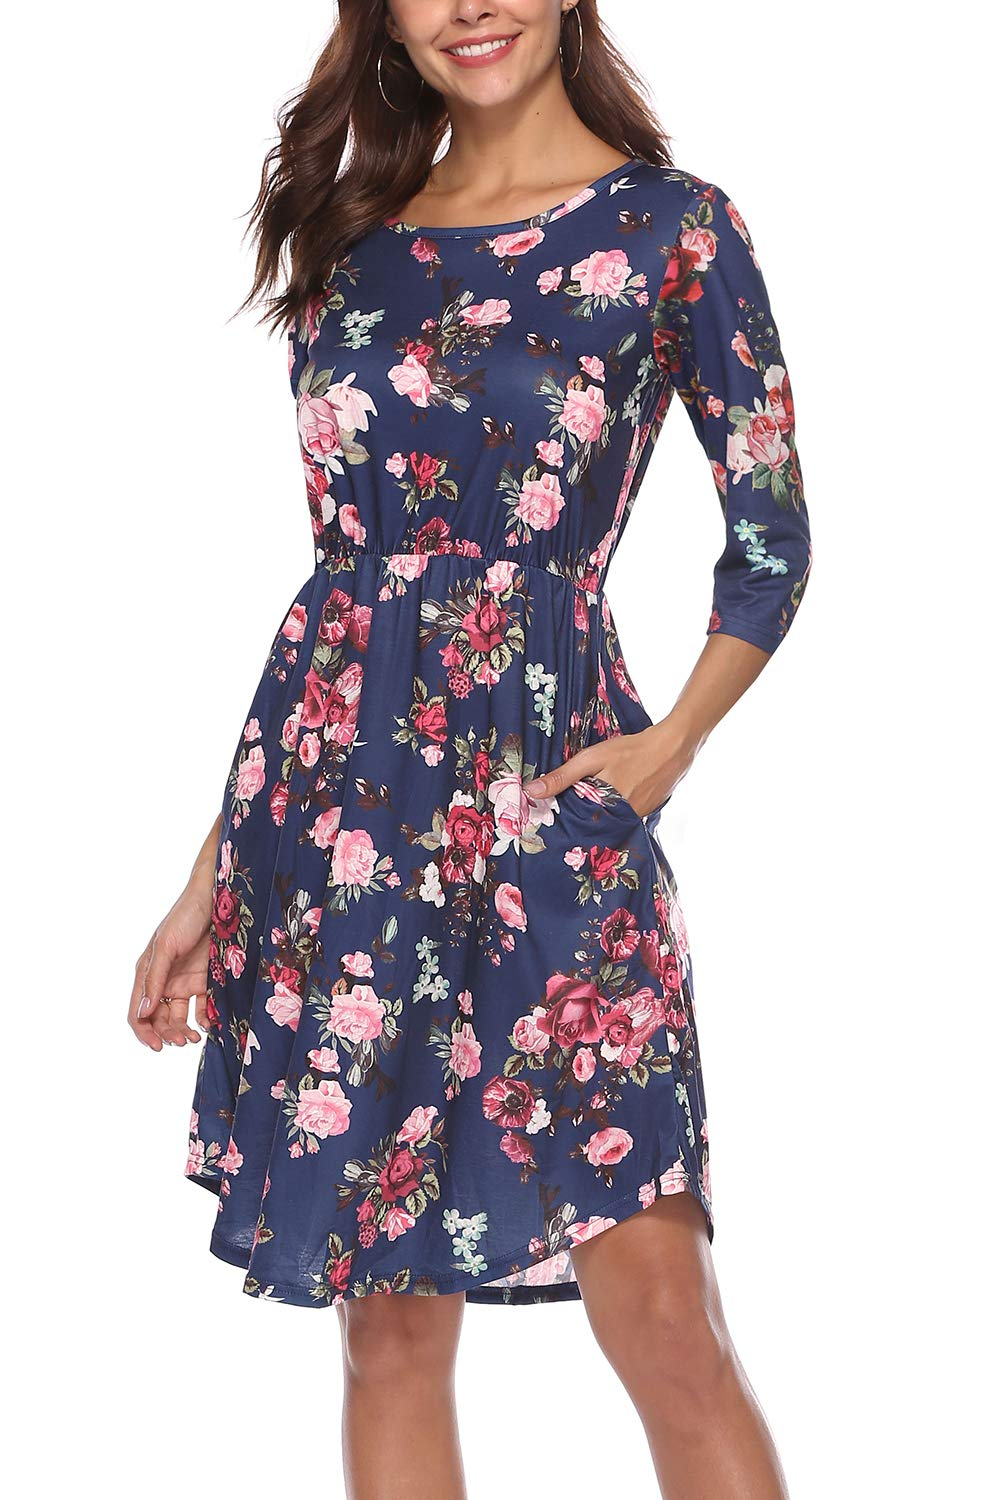 NICIAS Women Floral 3 4 Sleeve Tunic Vintage Midi Casual Dress with Pockets Navy L